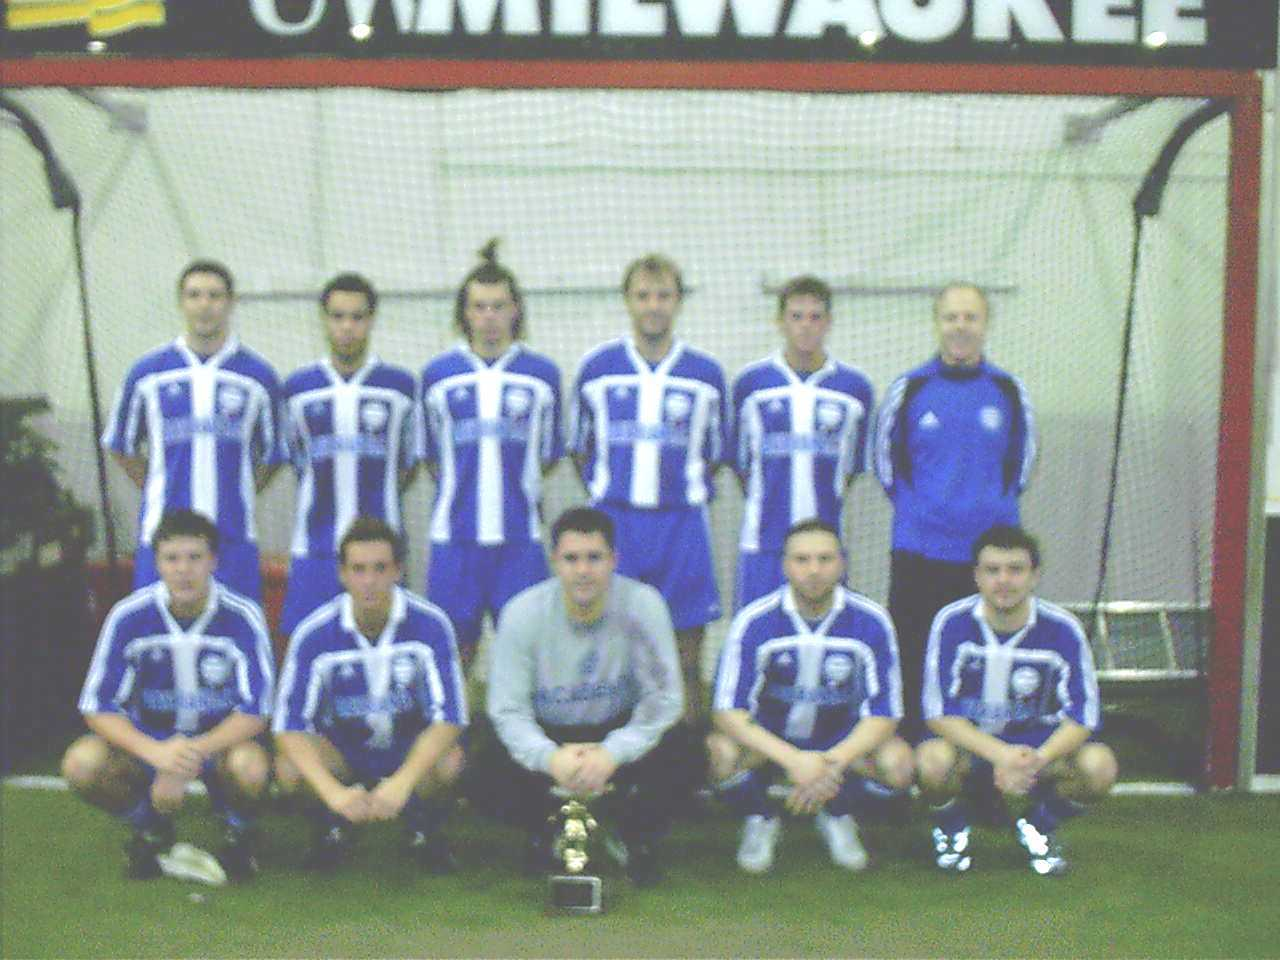 2005 Men's Indoor League Champions